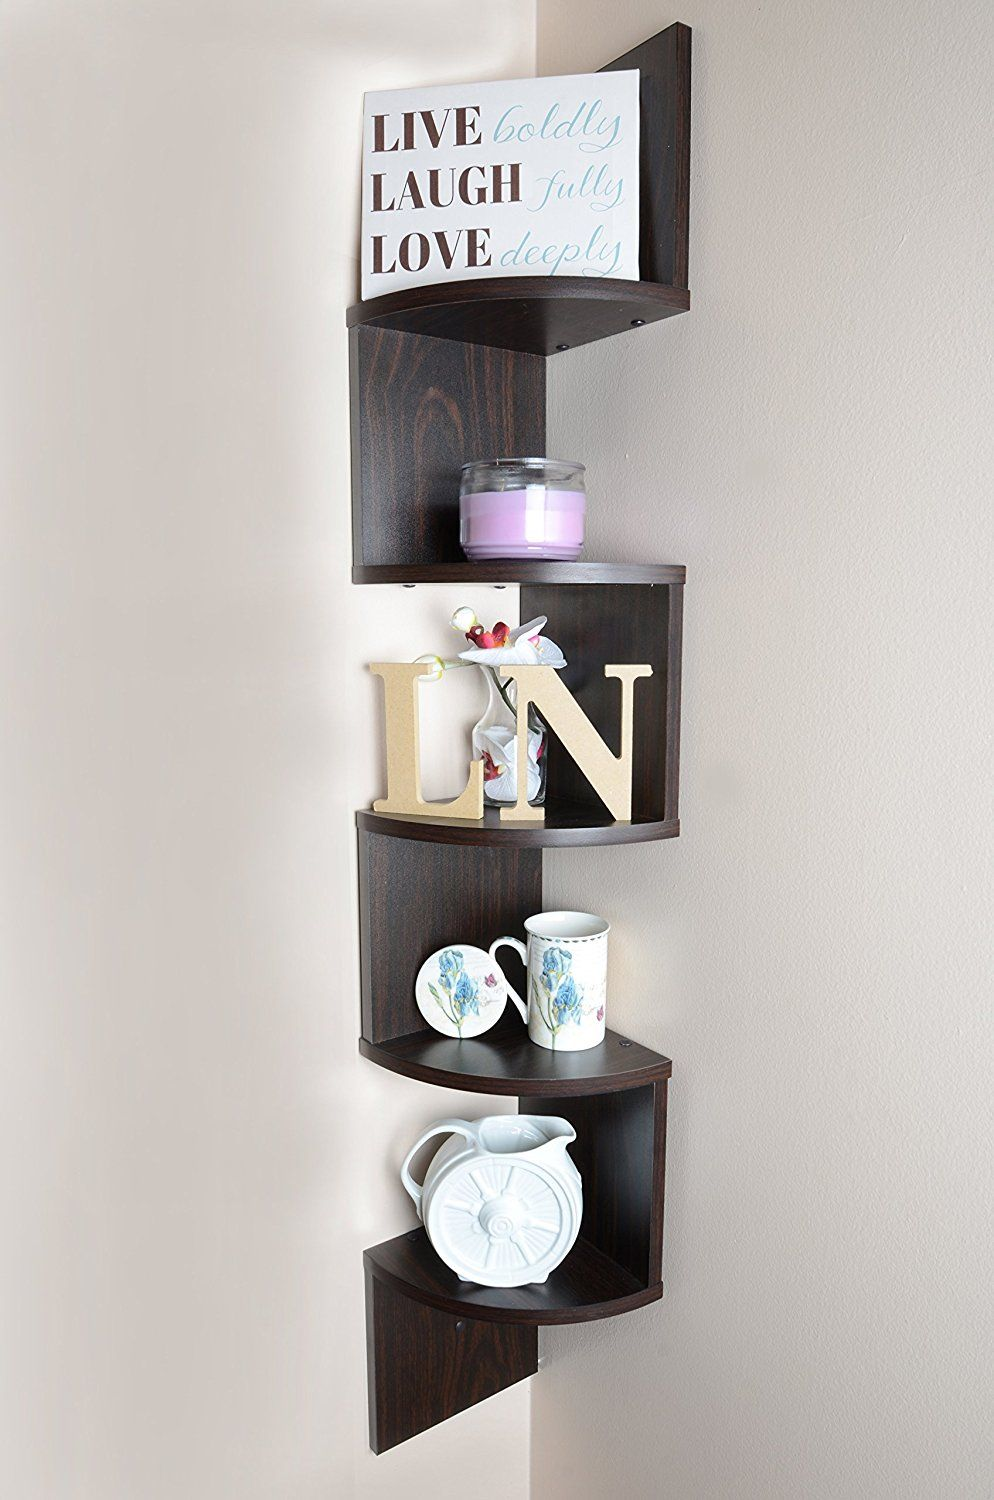 Adorn Large 5 Tier Corner Shelf Wall Mount Brown Check This Awesome Image Floating Shel Wall Mounted Corner Shelves Corner Shelves Wall Mounted Shelves